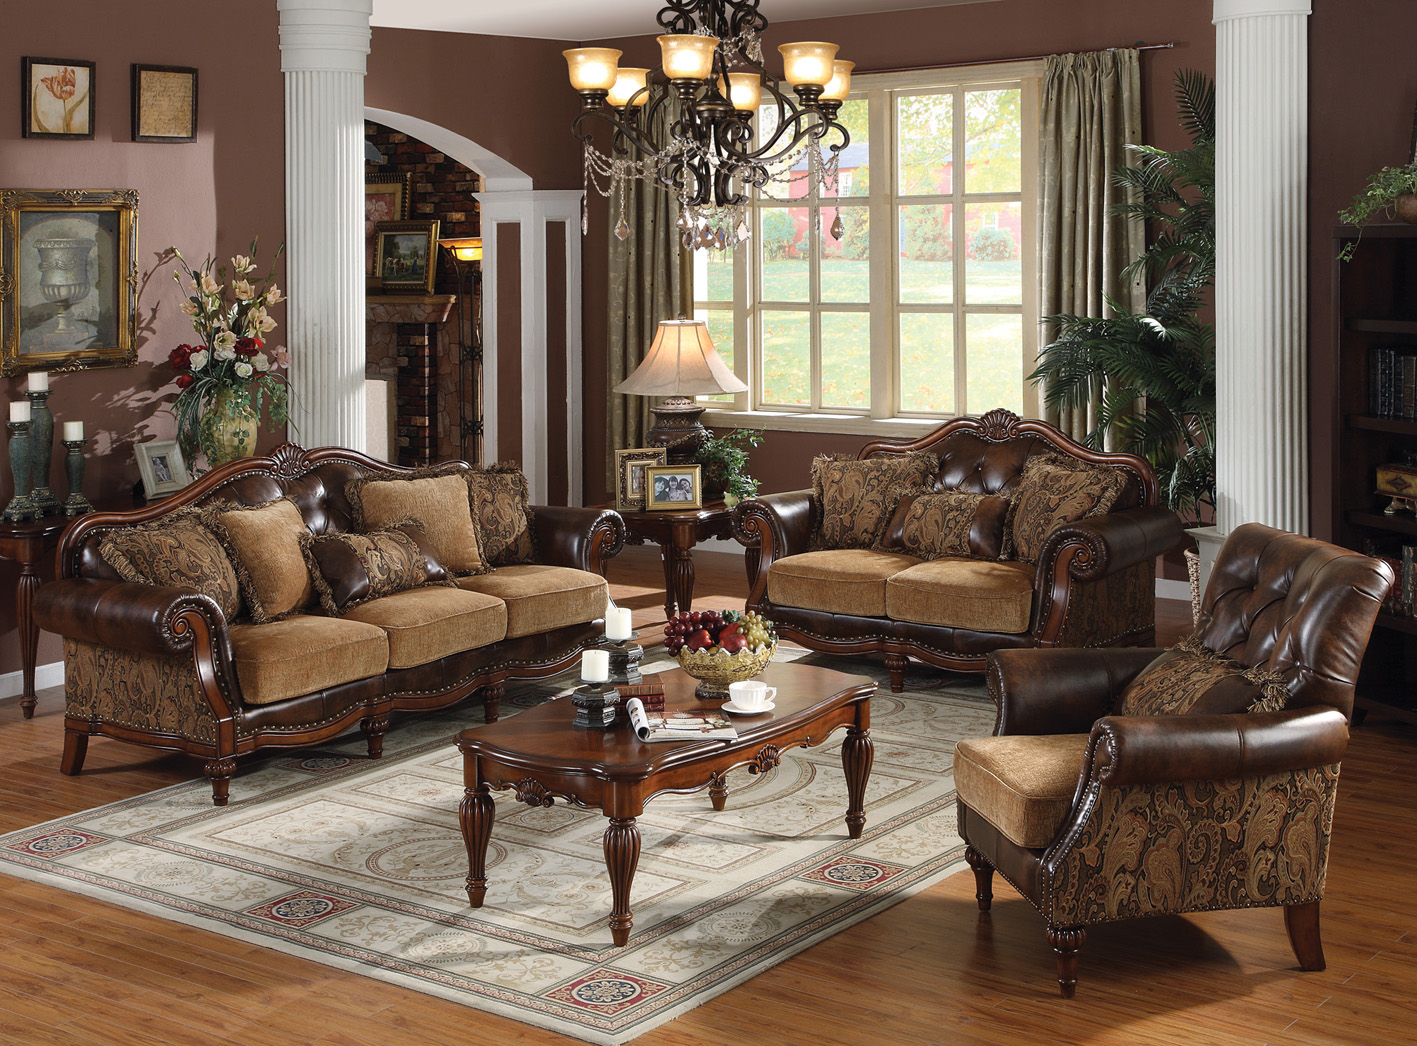 How To Add Style To Your Living Room Interior Designing